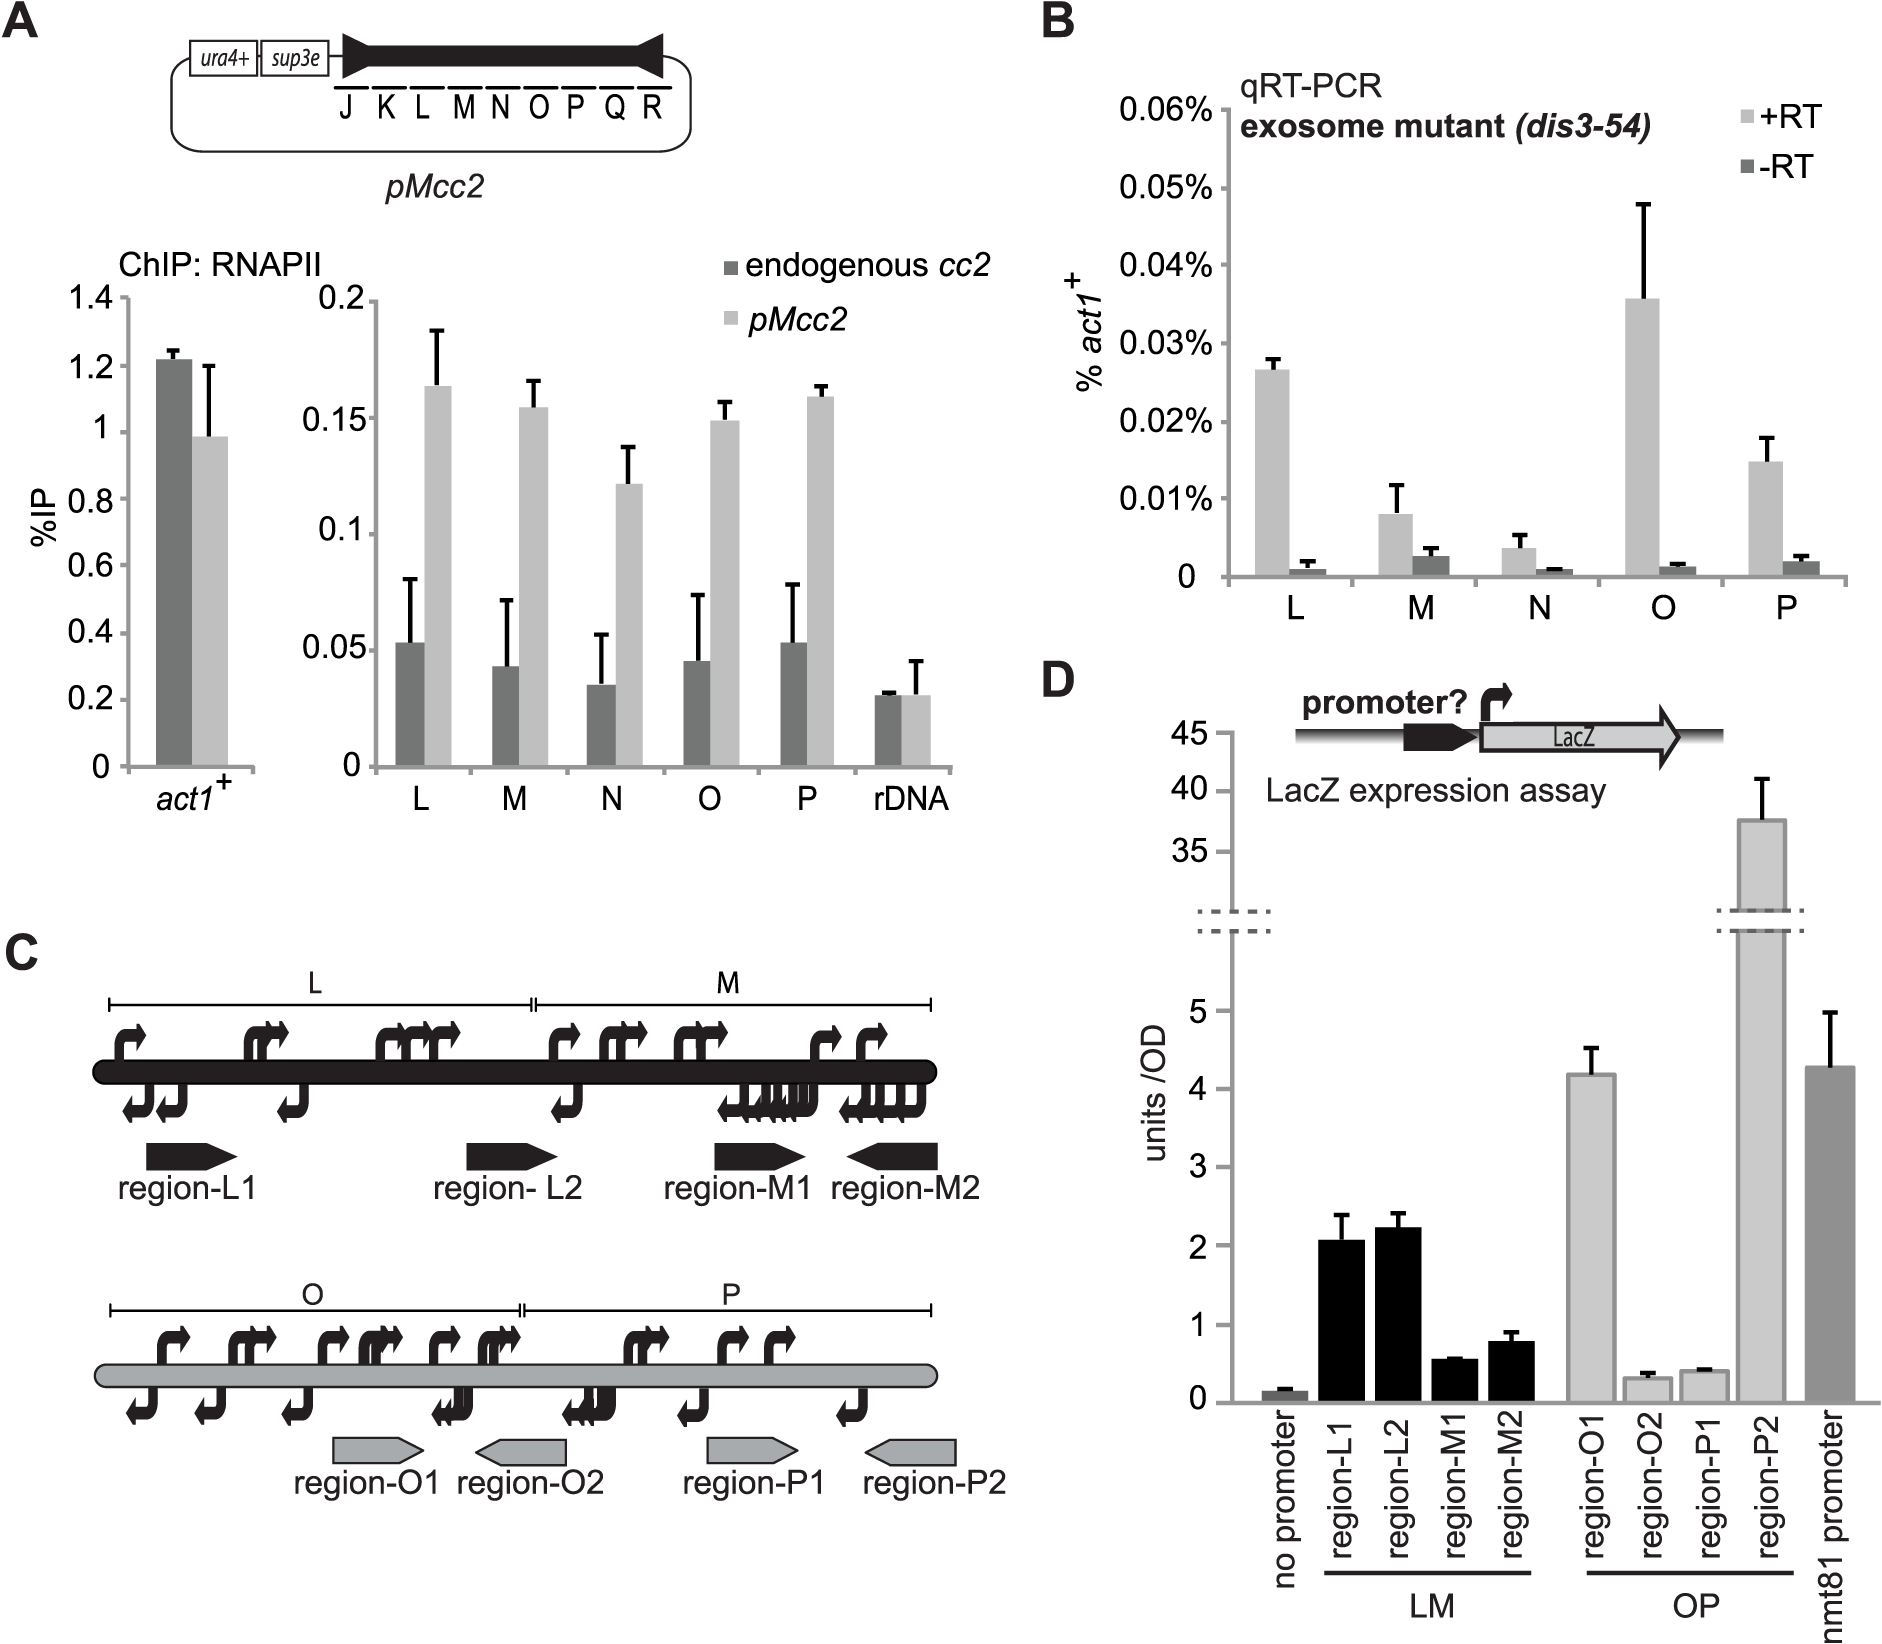 High levels of RNAPII but low levels of transcripts are found at central domain.